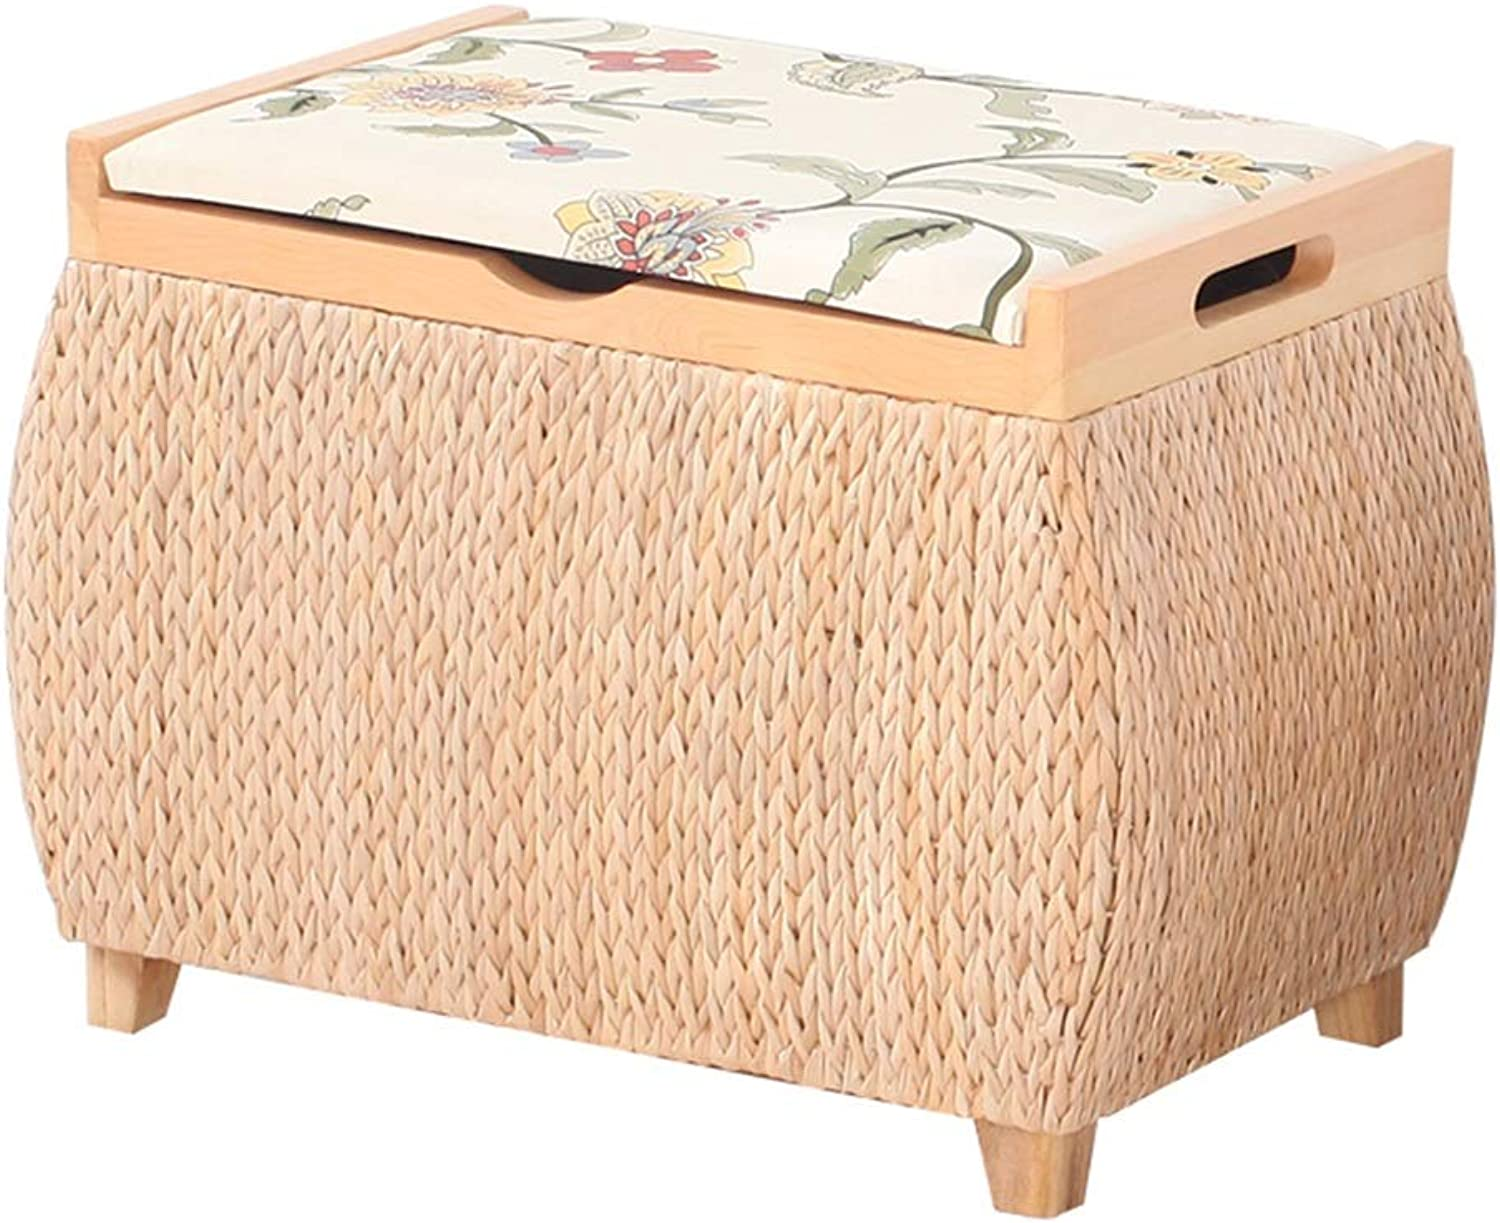 LSXIAO Pouffes And Footstools Storage Stool 4 Solid Wood Legs Stable Natural Plants Handmade Green Formaldehyde Free, 2 Sizes (color   Beige A, Size   40x29x32cm)